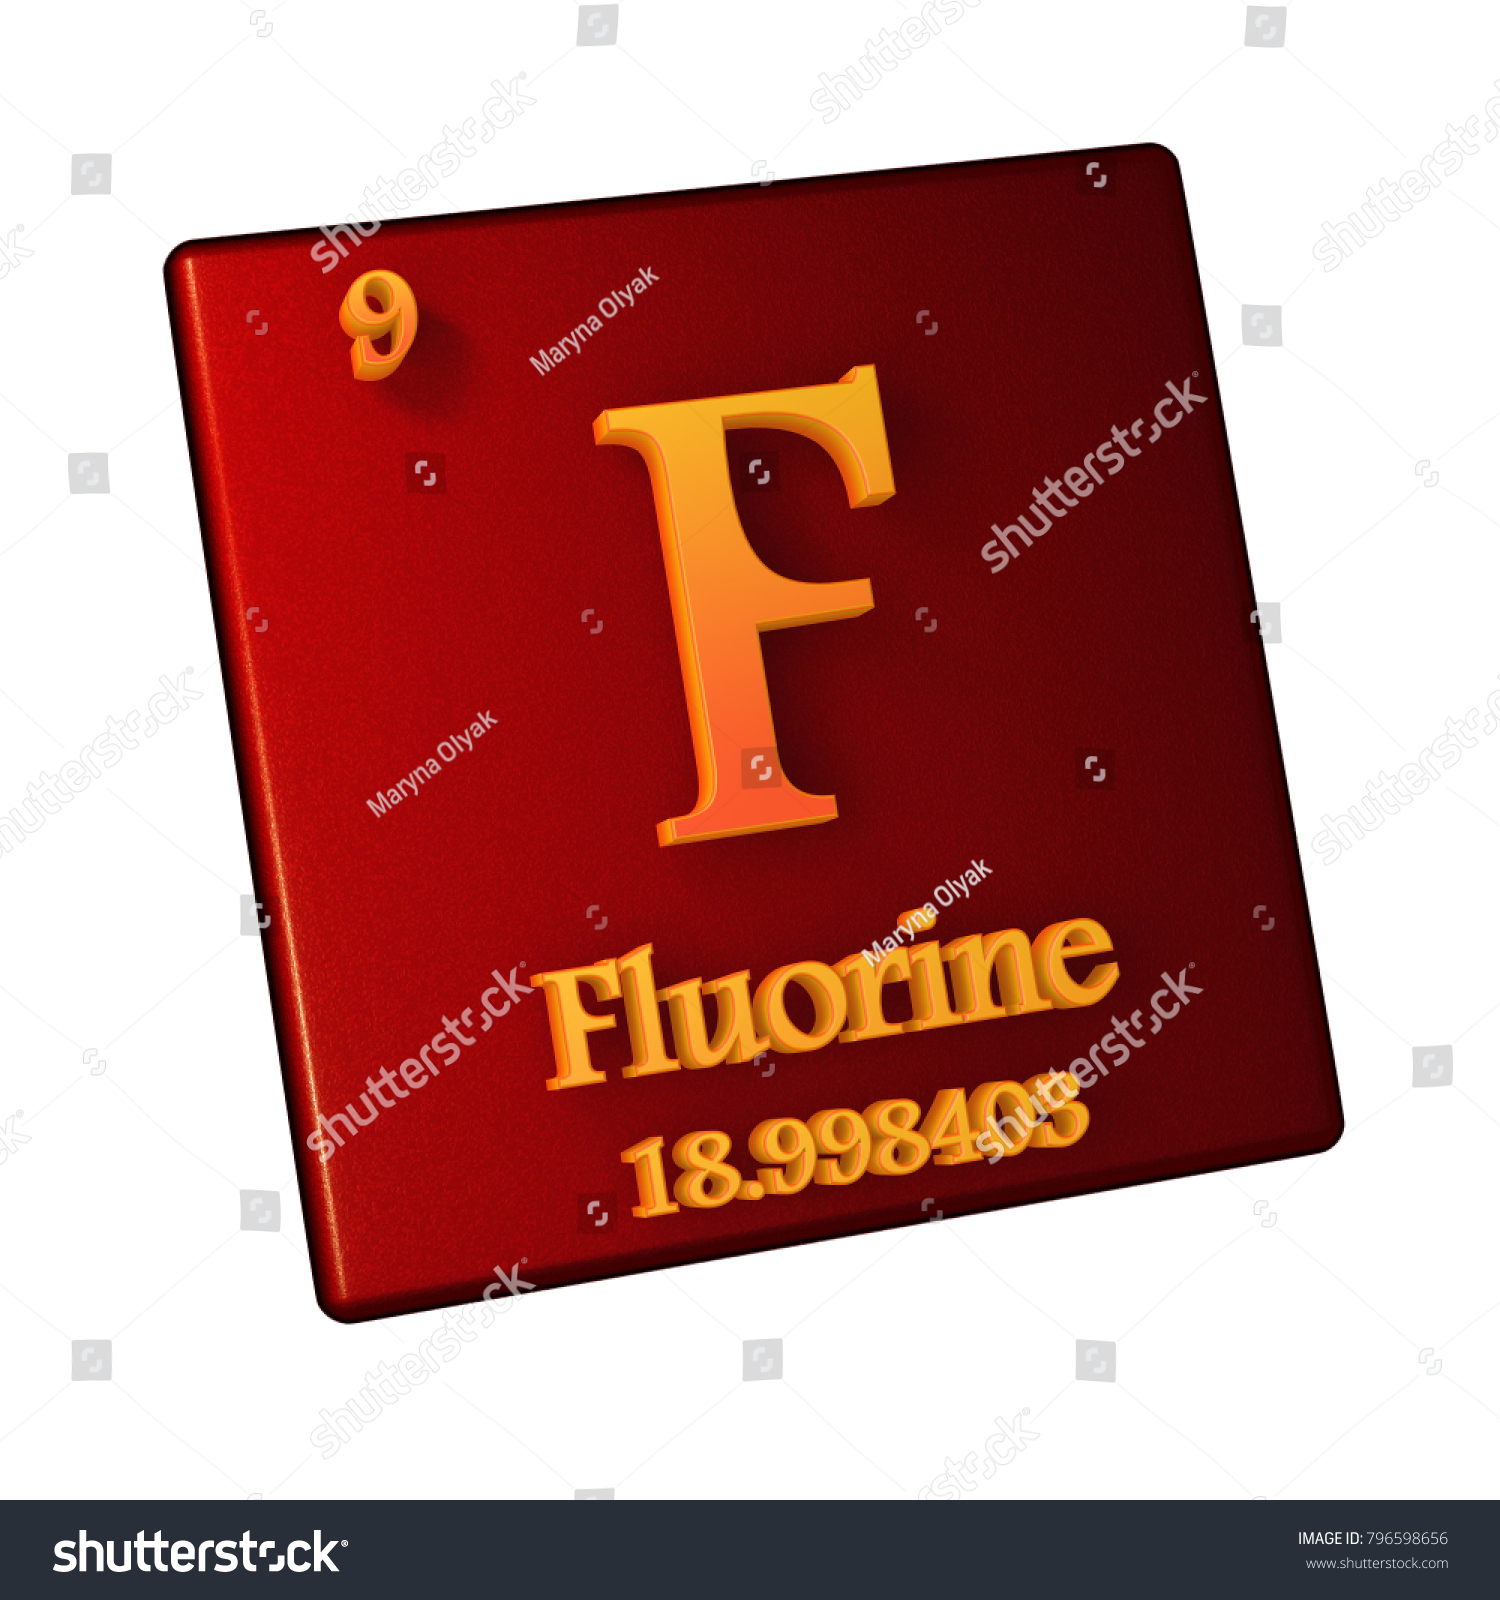 Fluorine chemical element number 9 periodic stock illustration fluorine chemical element number 9 periodic stock illustration 796598656 shutterstock urtaz Image collections